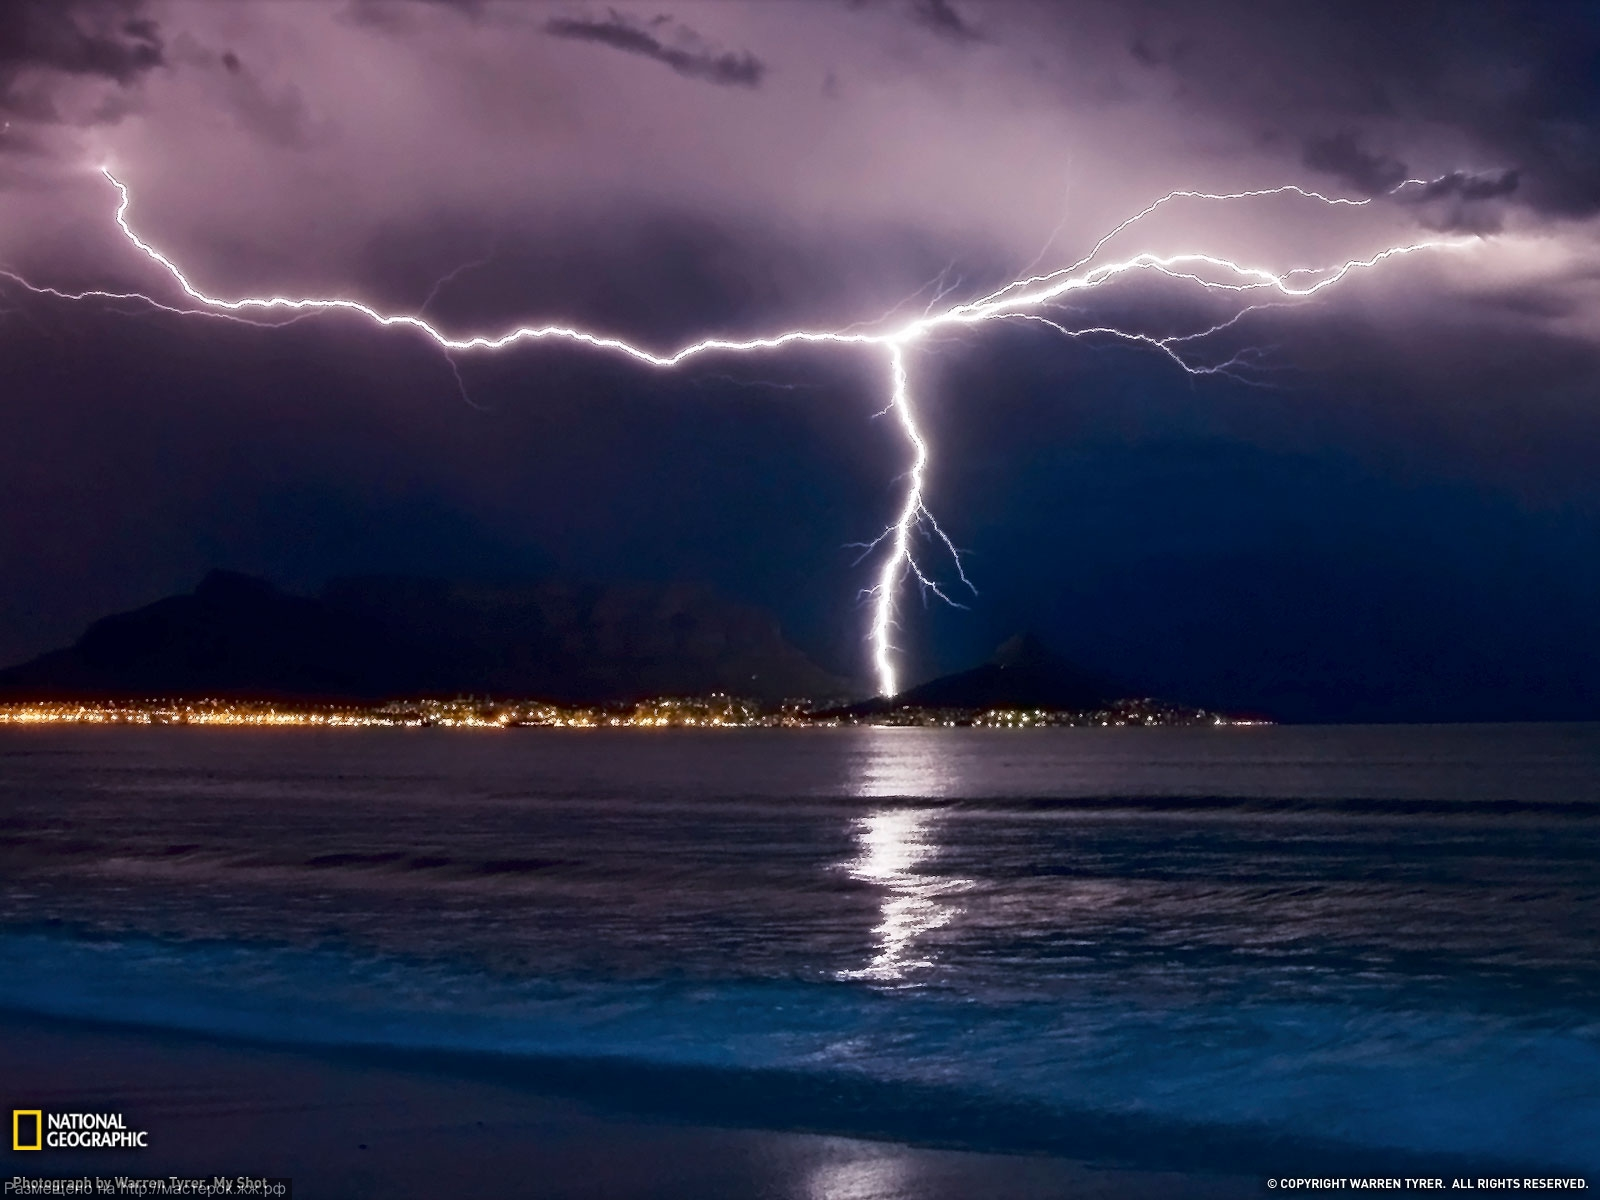 Two separate lightning bolts converge over Table Mountain in Cape Town, South Africa, with an amazing display of natural electricity.